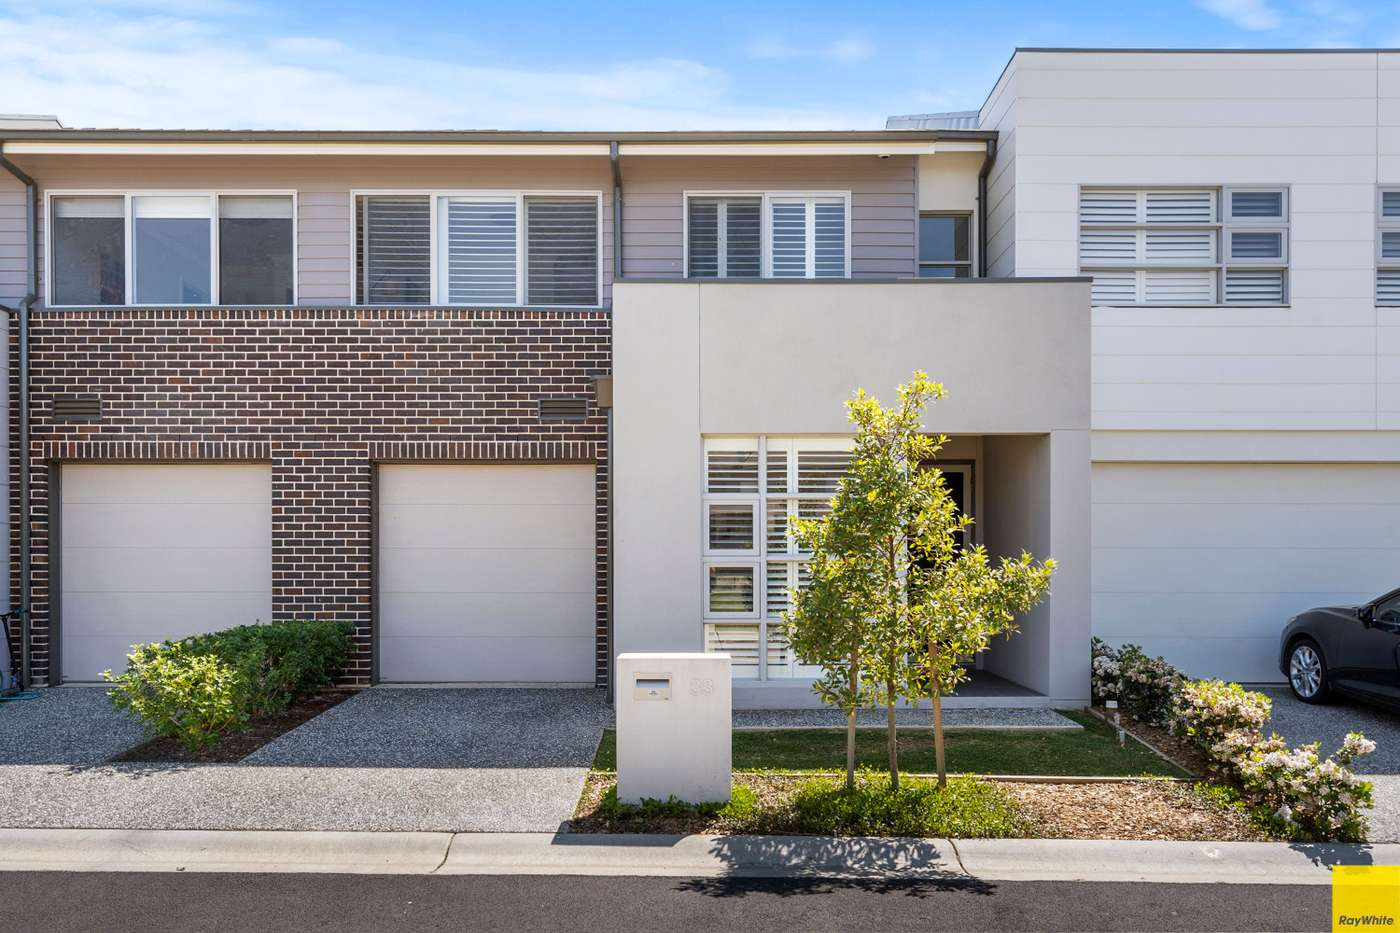 Main view of Homely house listing, 33 Aspect Crescent, Glenmore Park, NSW 2745